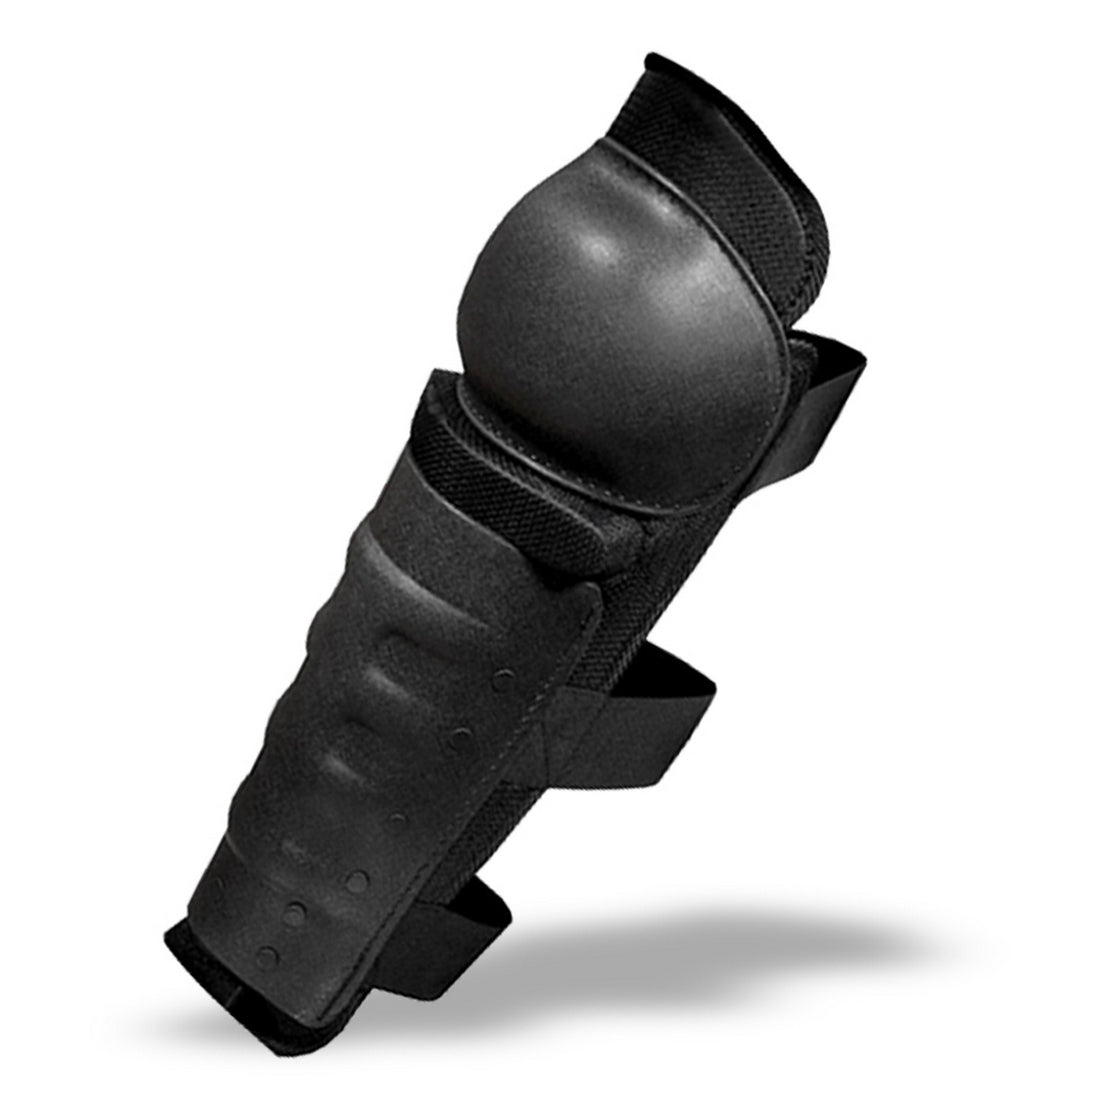 SecPro Riot Shin Guards With Non-Slip Knee Protector